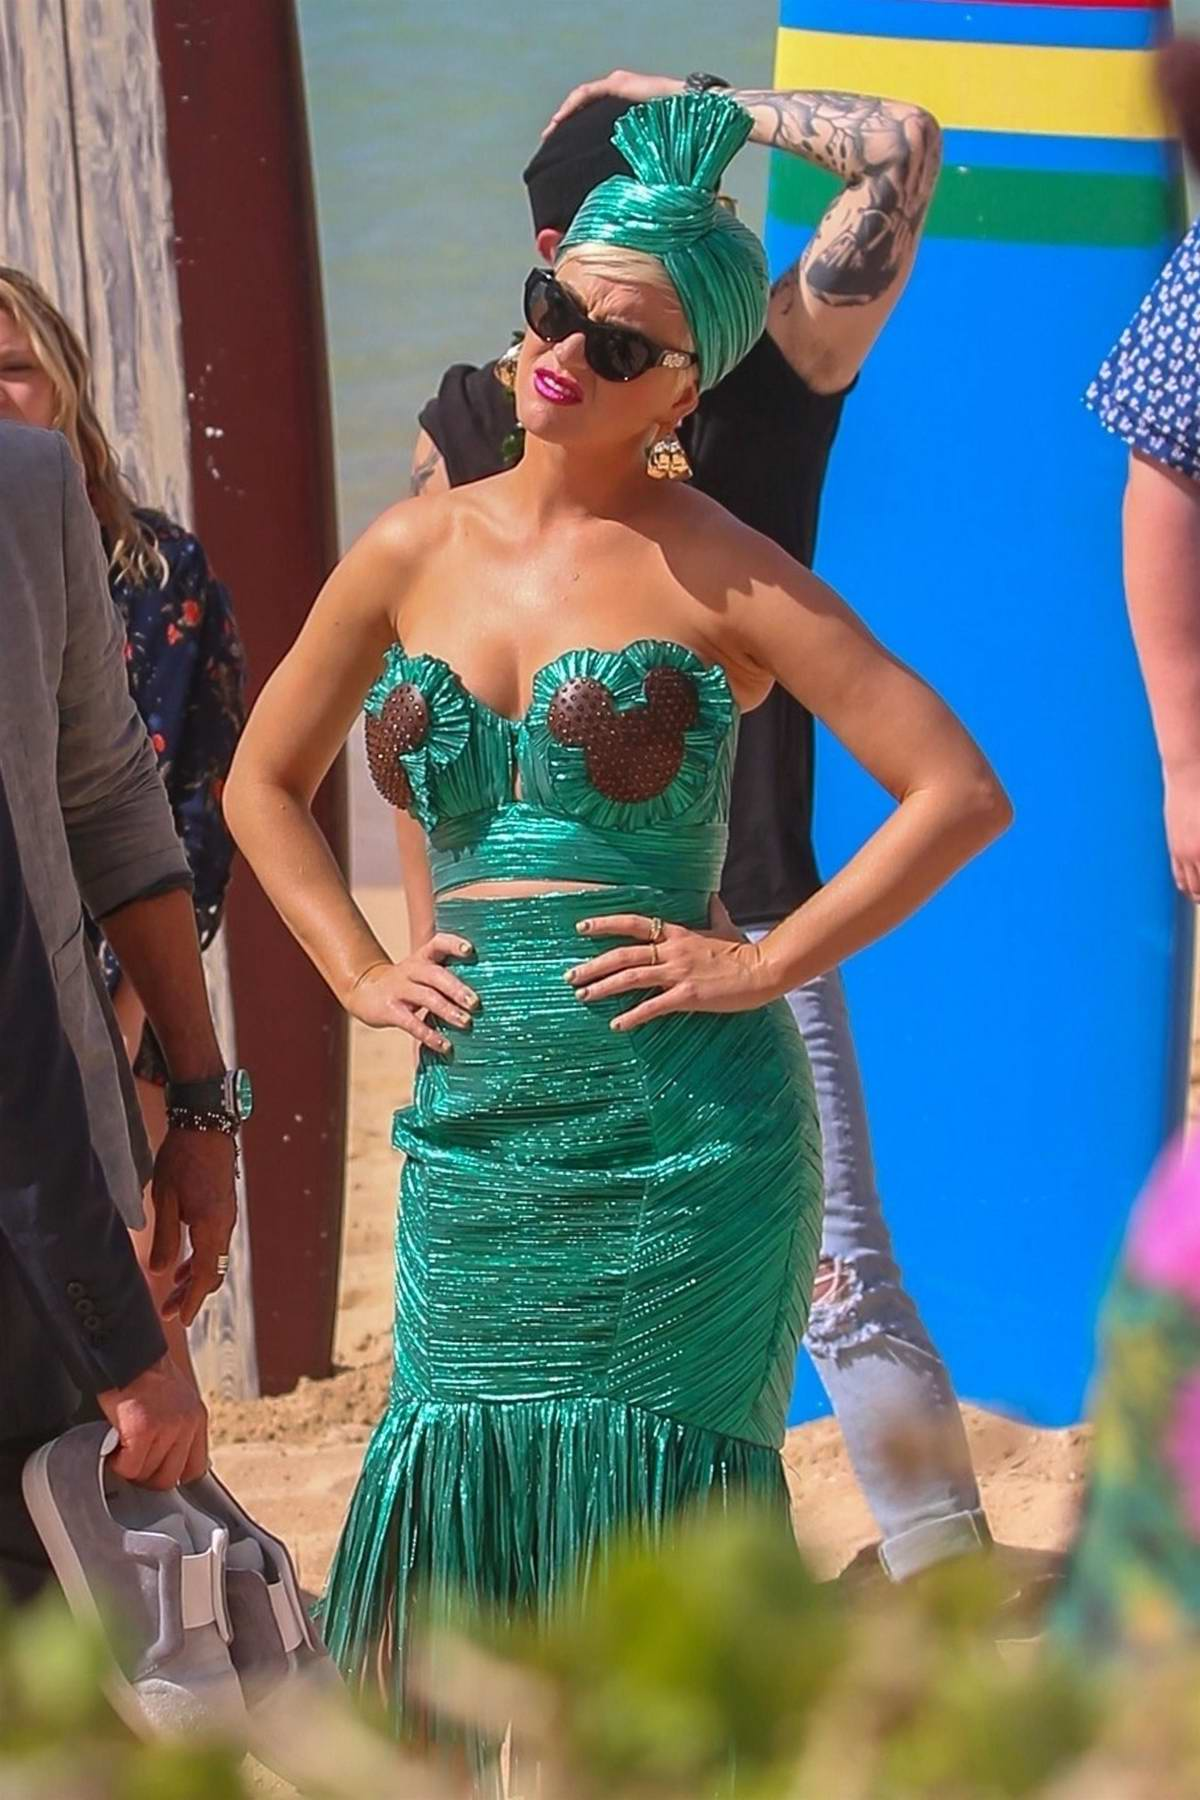 Katy Perry spotted in a green strapless dress while filming on the beach for the upcoming season of American Idol in Oahu, Hawaii